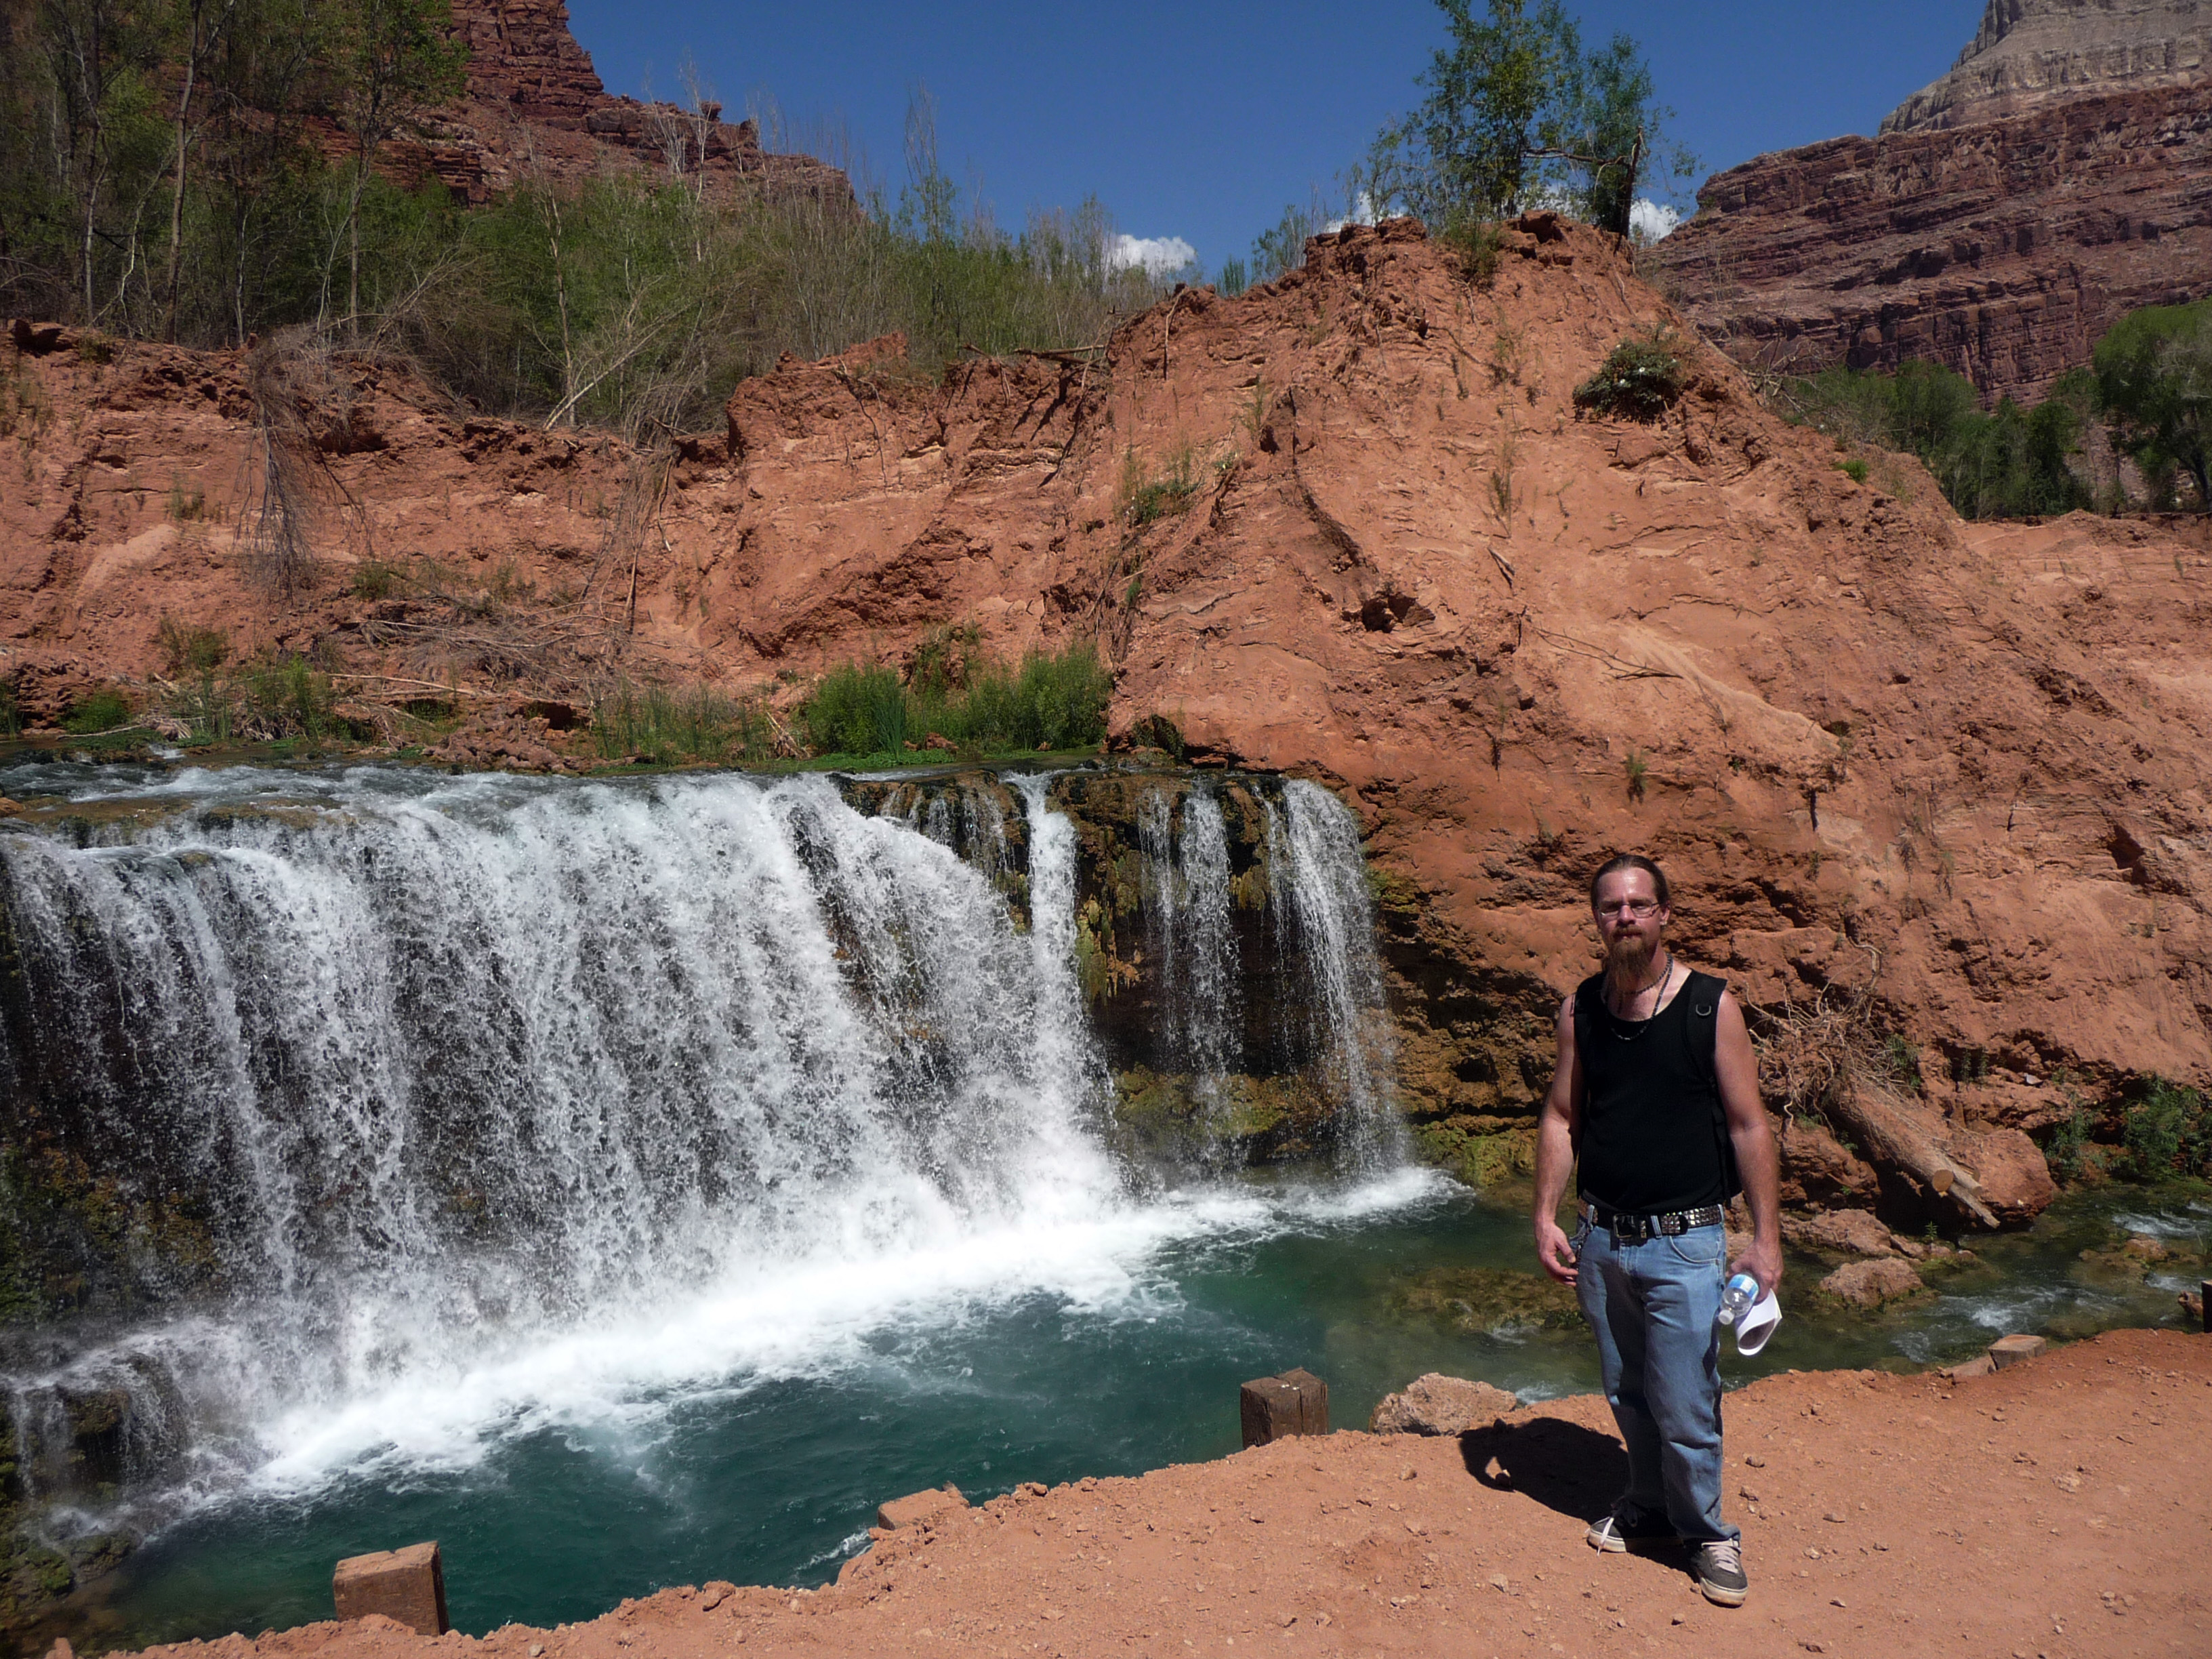 Carl in front of Havasu Falls